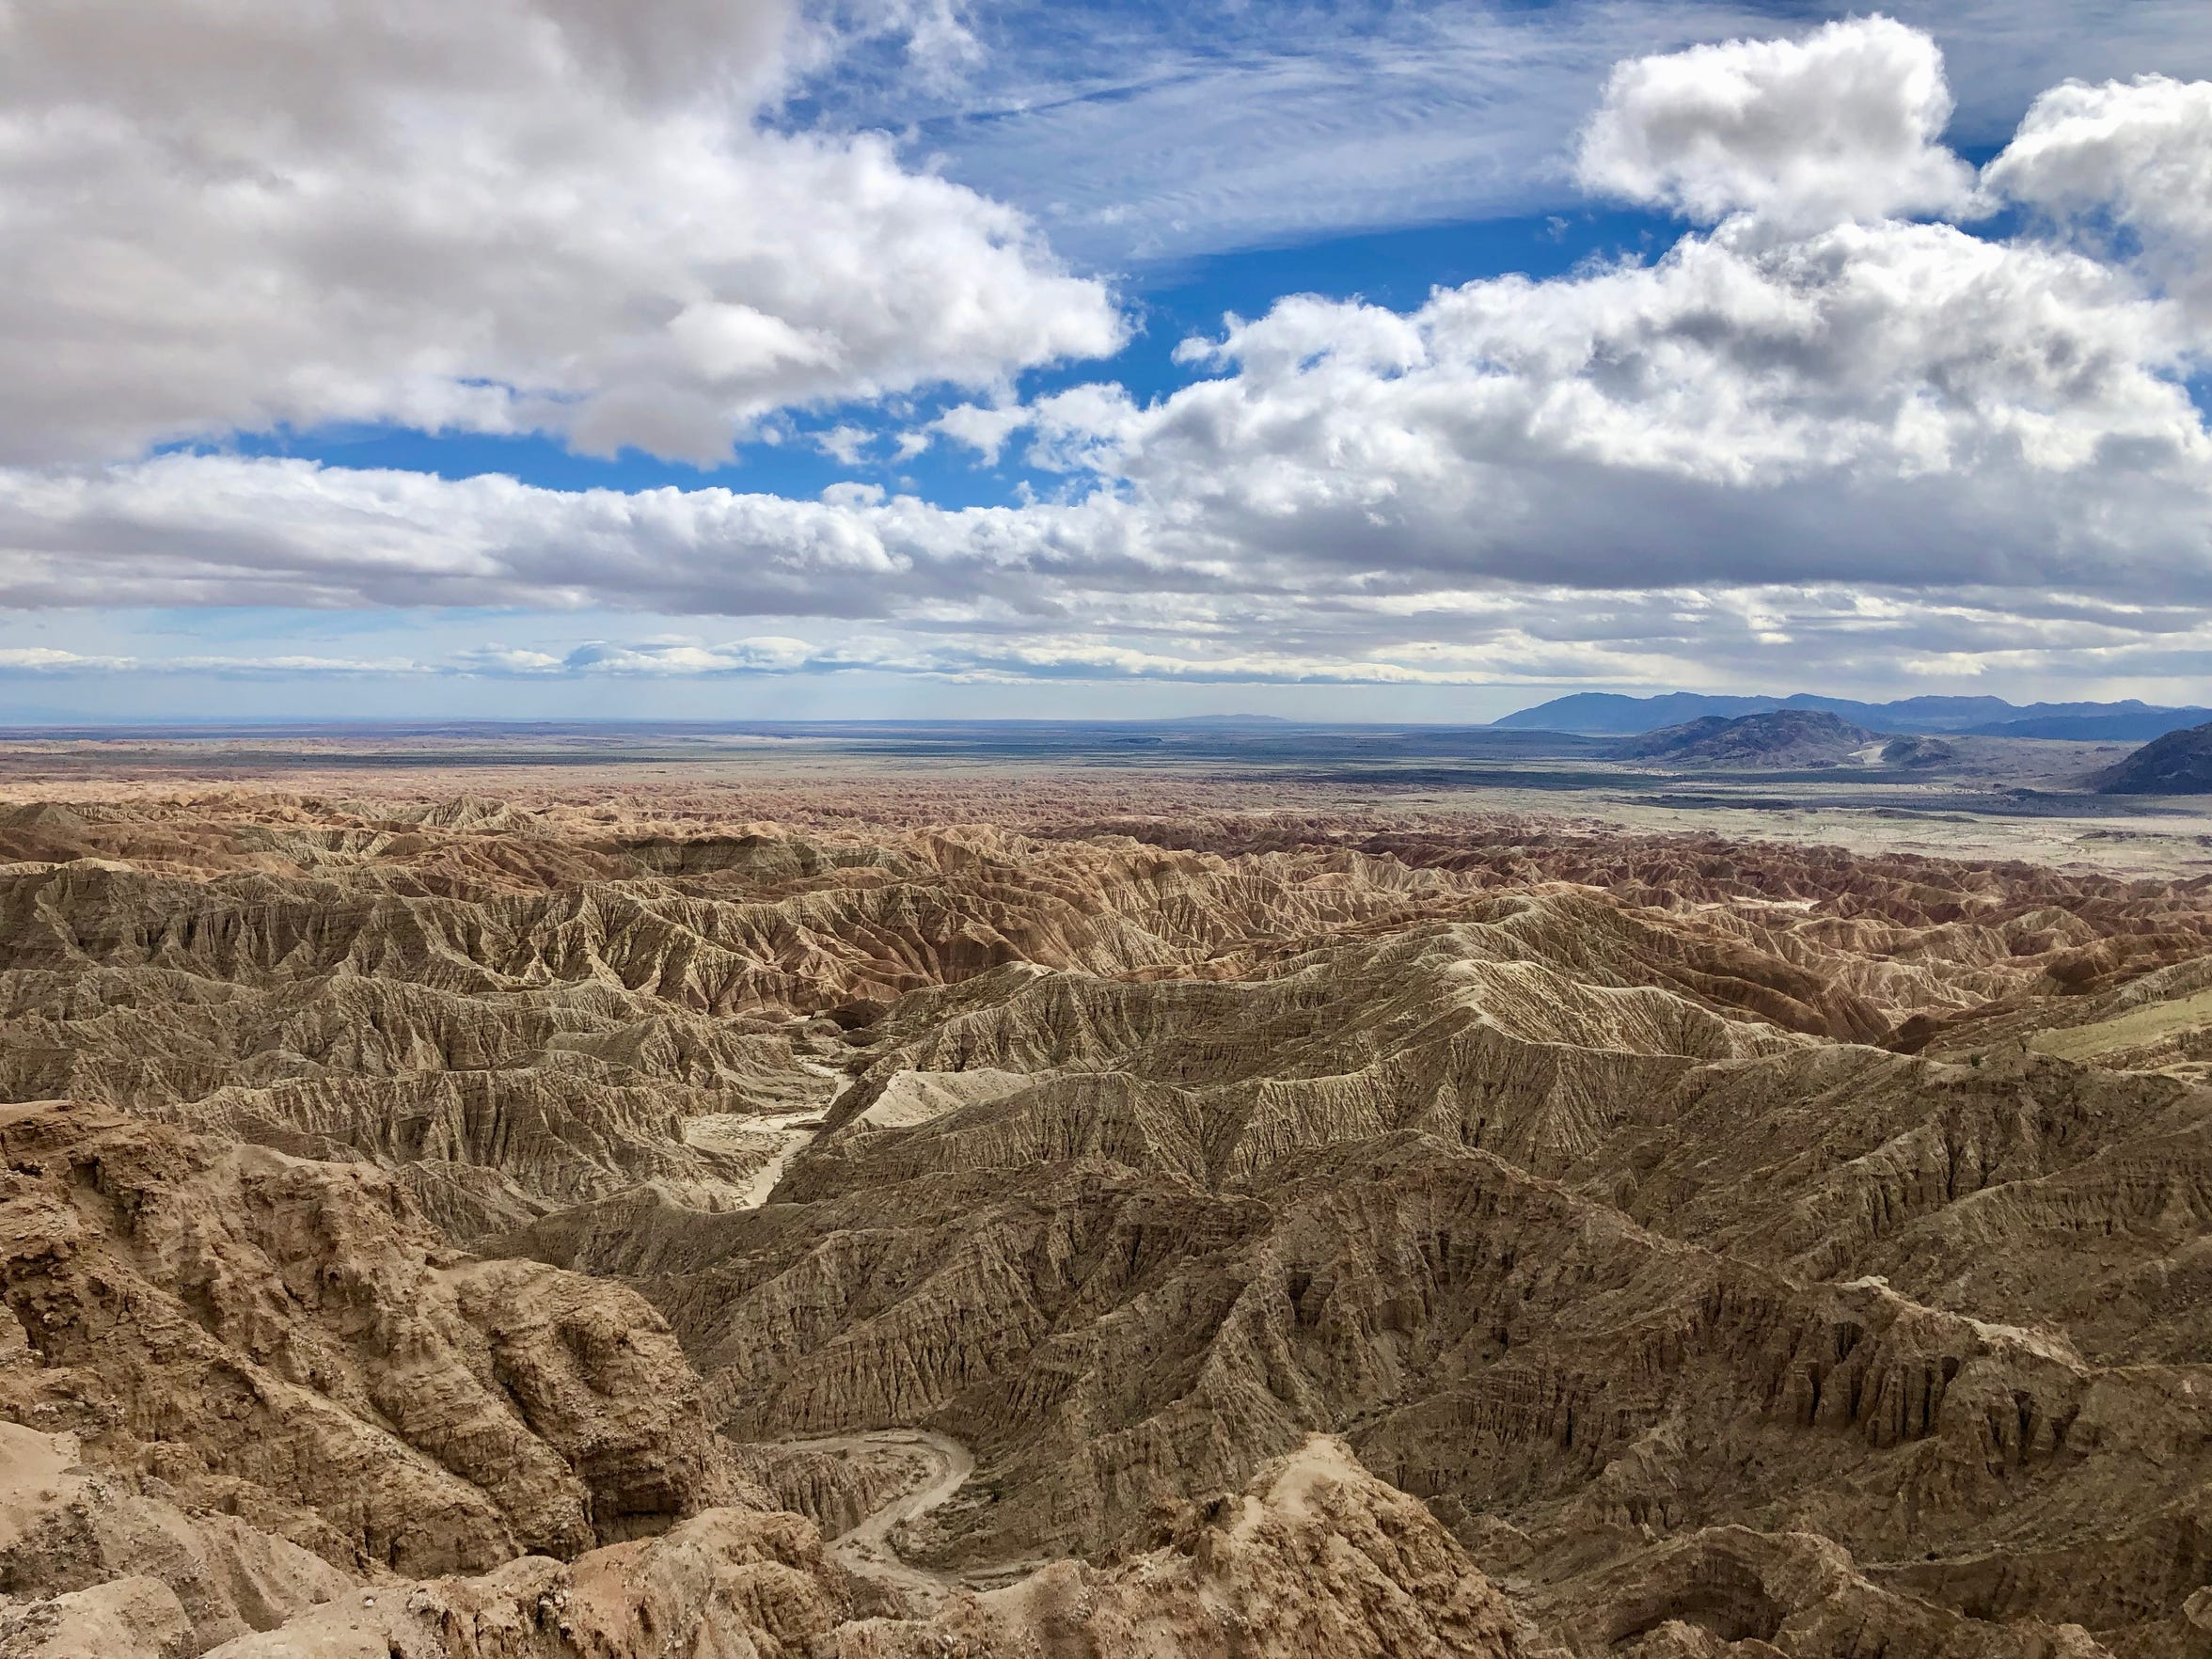 Font's Point in Anza-Borrego Desert State Park